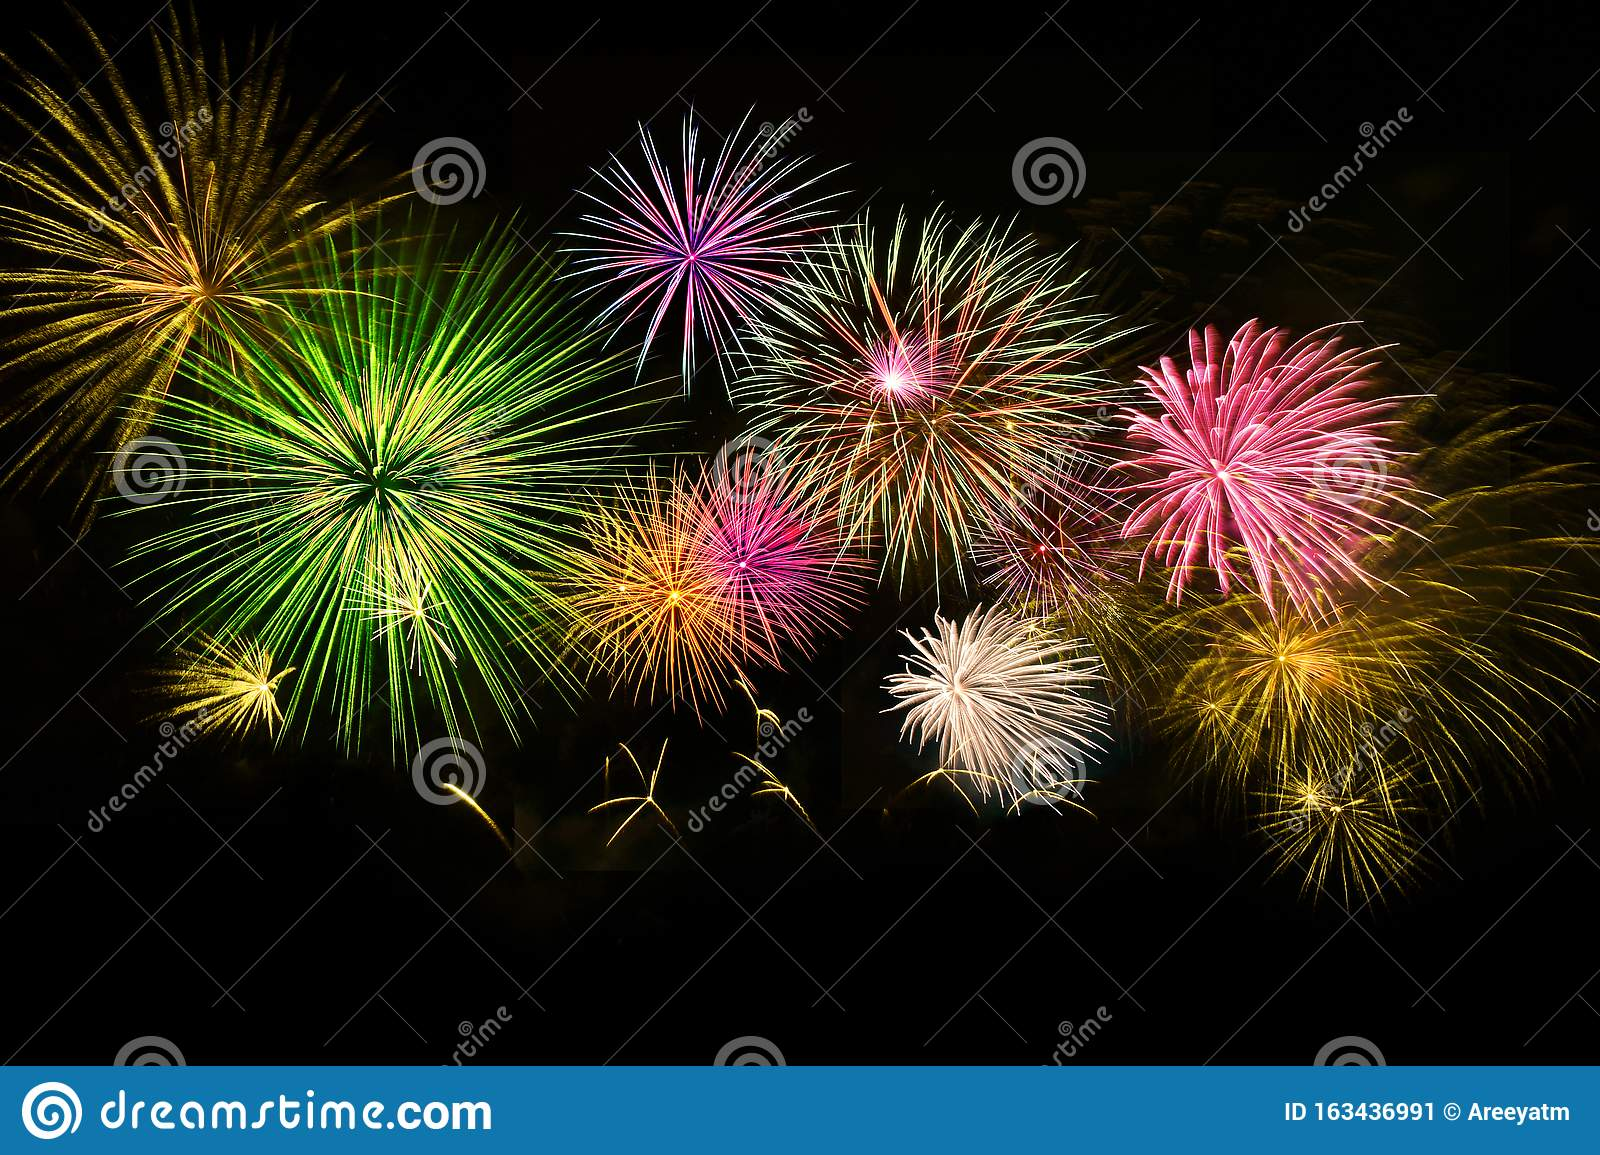 Colorful fireworks on midnight sky background